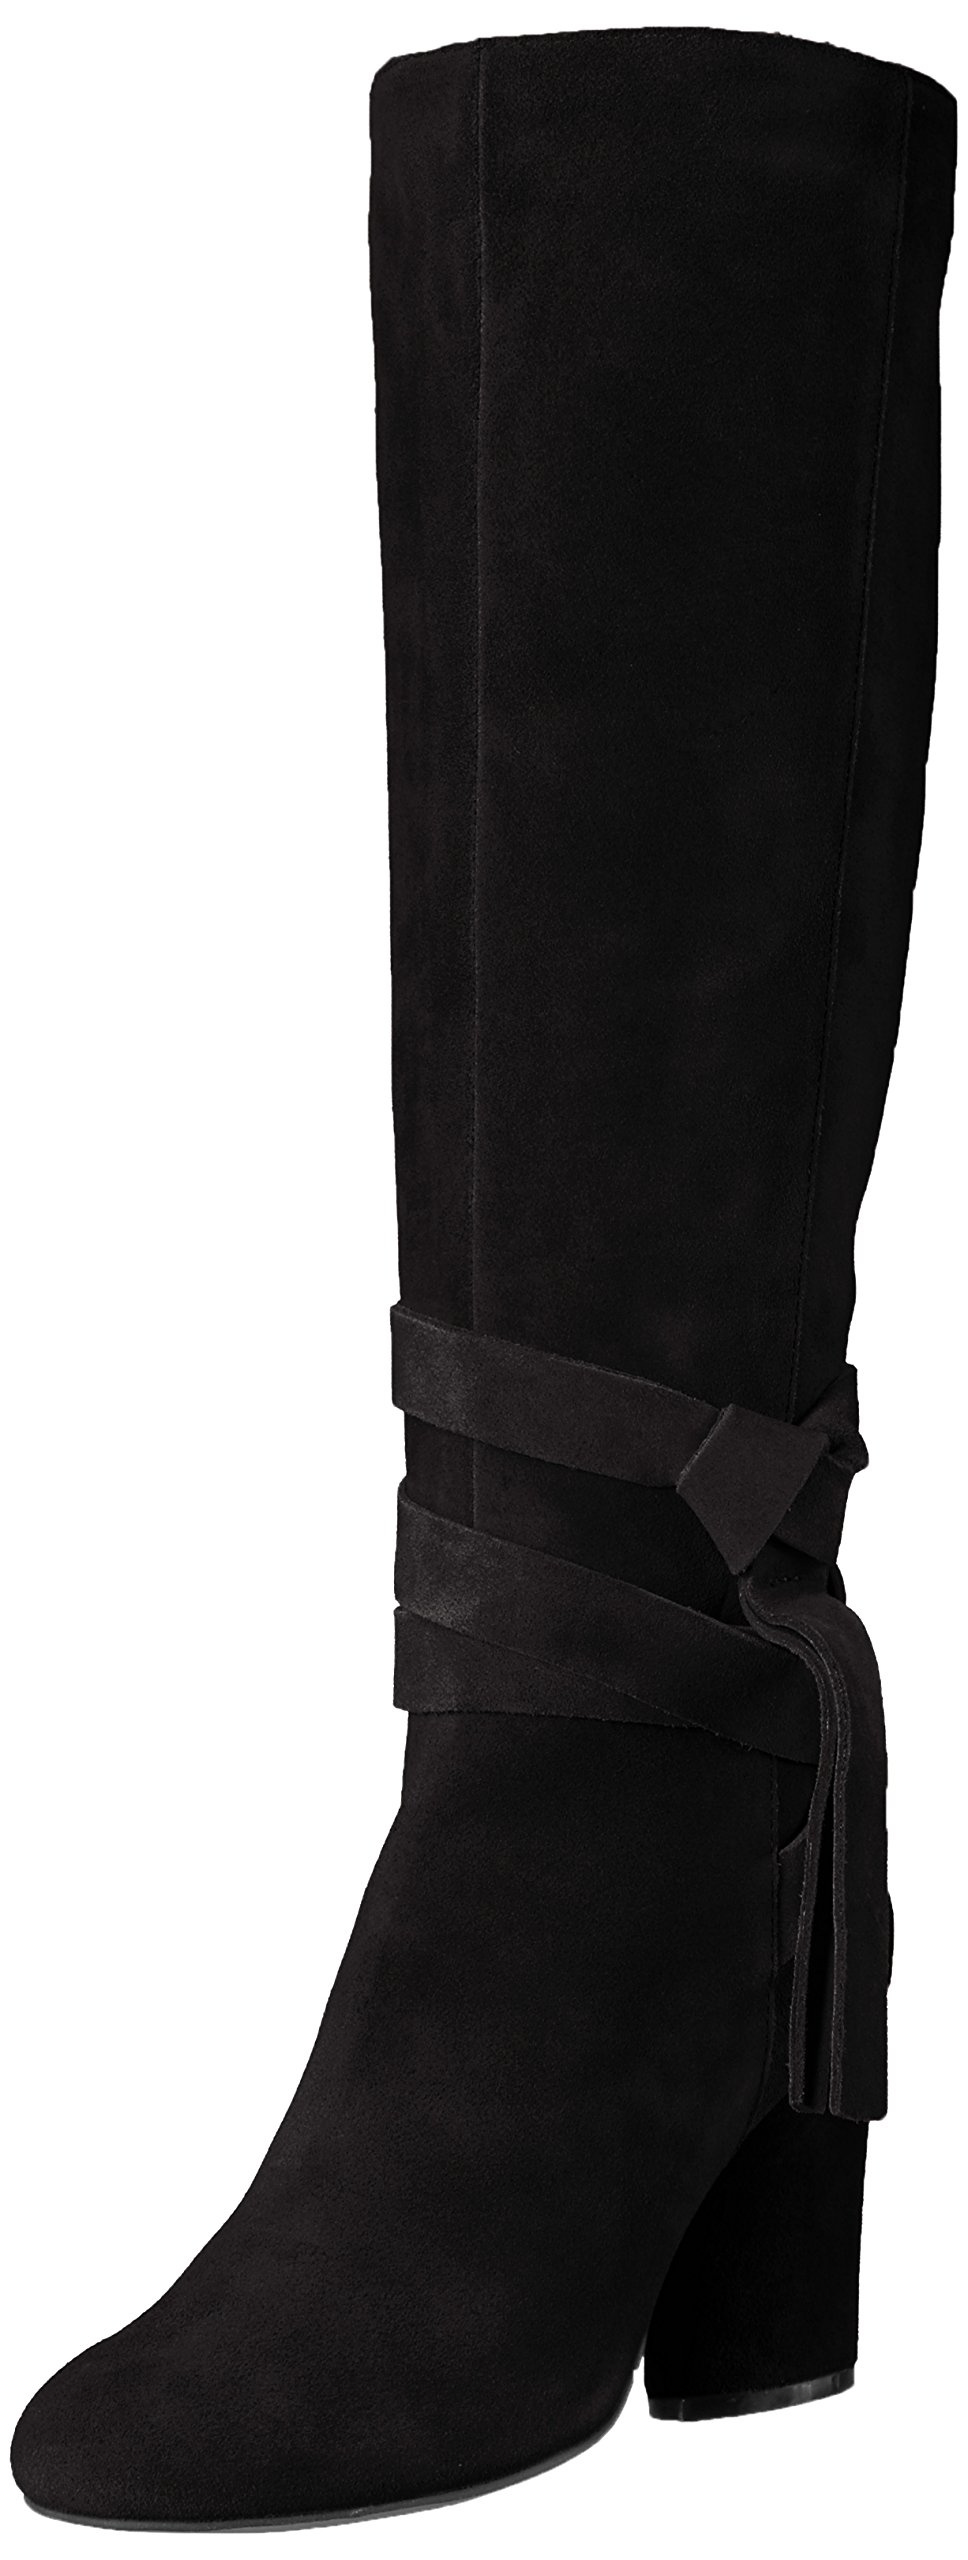 The Fix Women's Nia Knee-High Ankle Tie Boot, Black, 10 M US